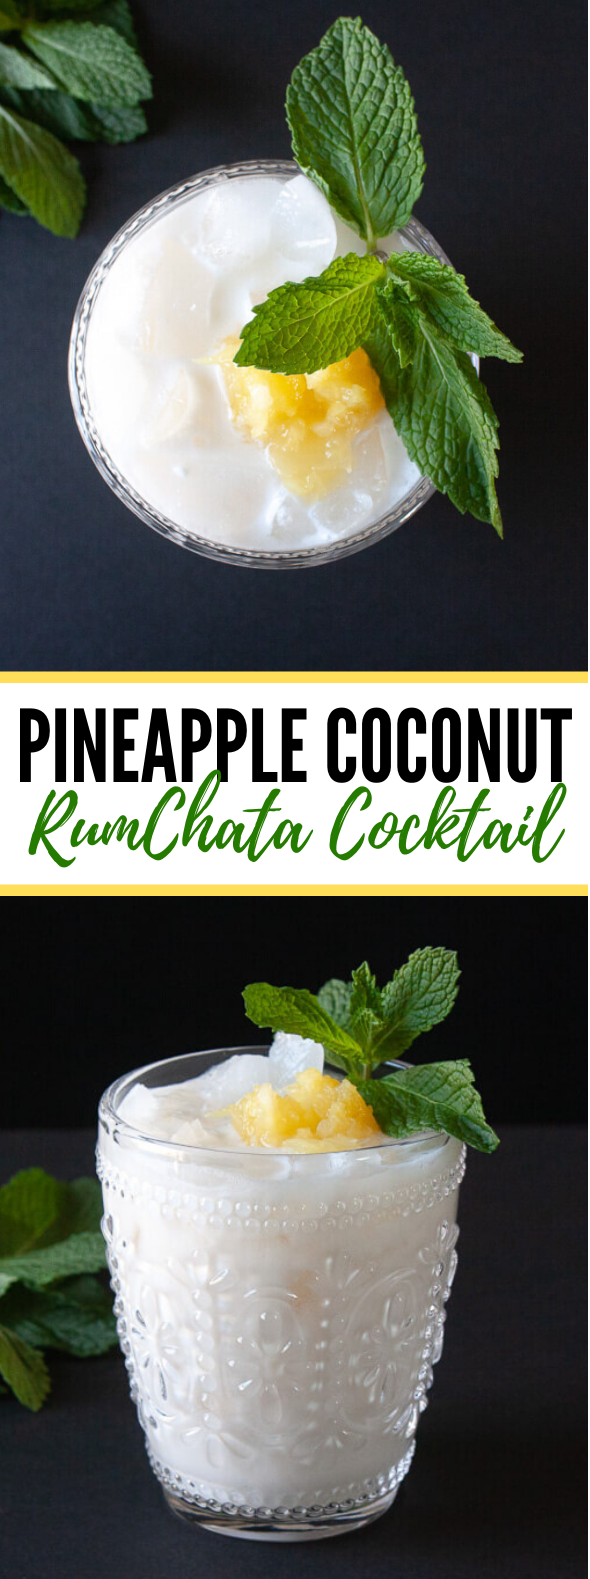 Pineapple Coconut RumChata Cocktail #drinks #partydrink